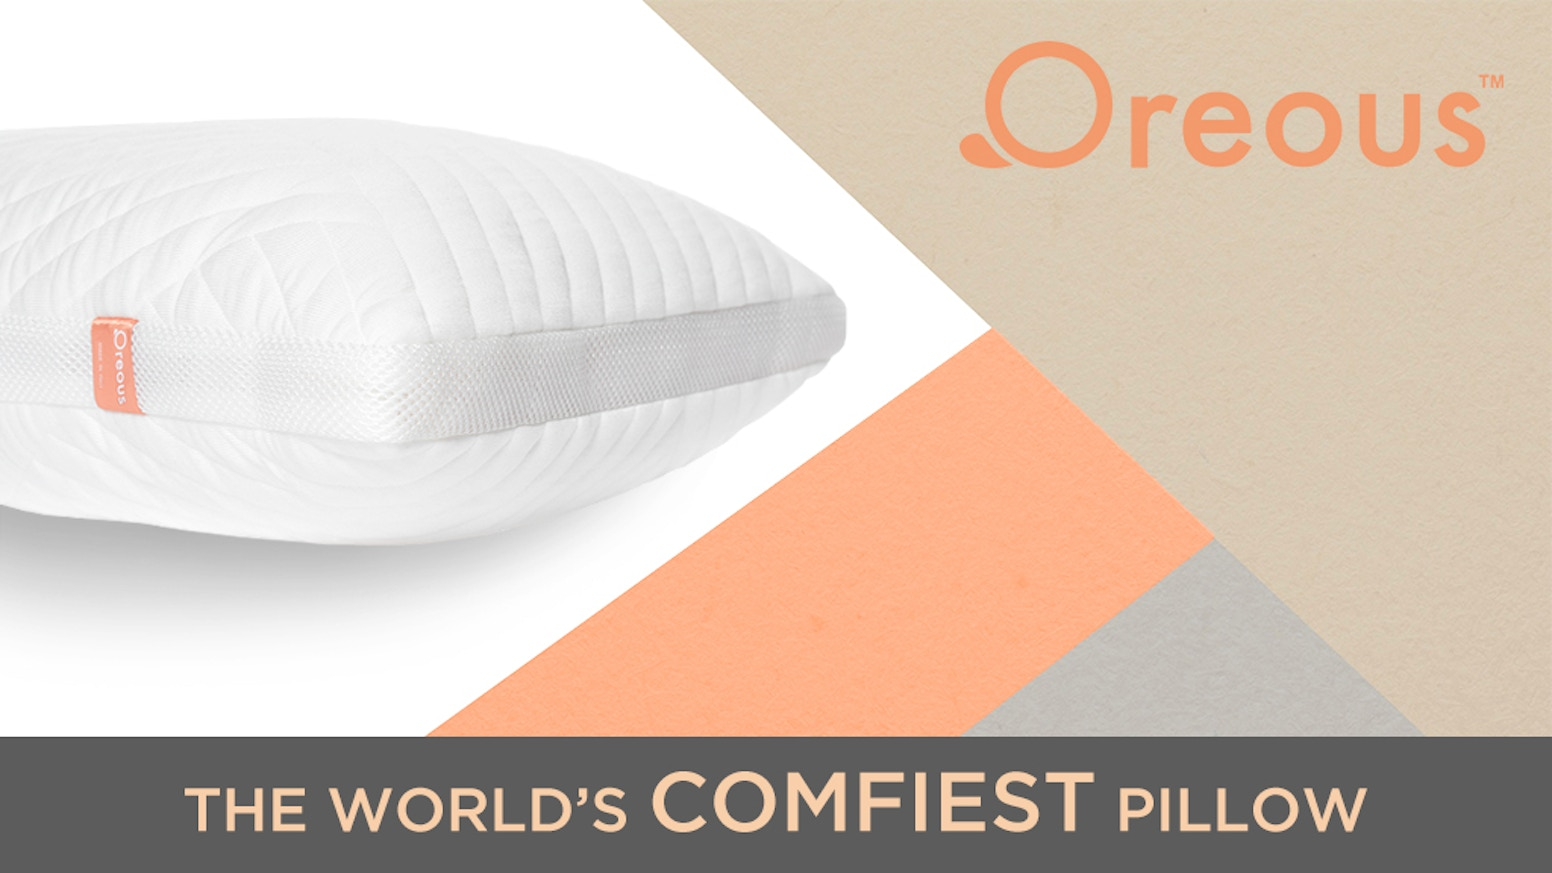 The comfiest, most advanced pillow in the world!